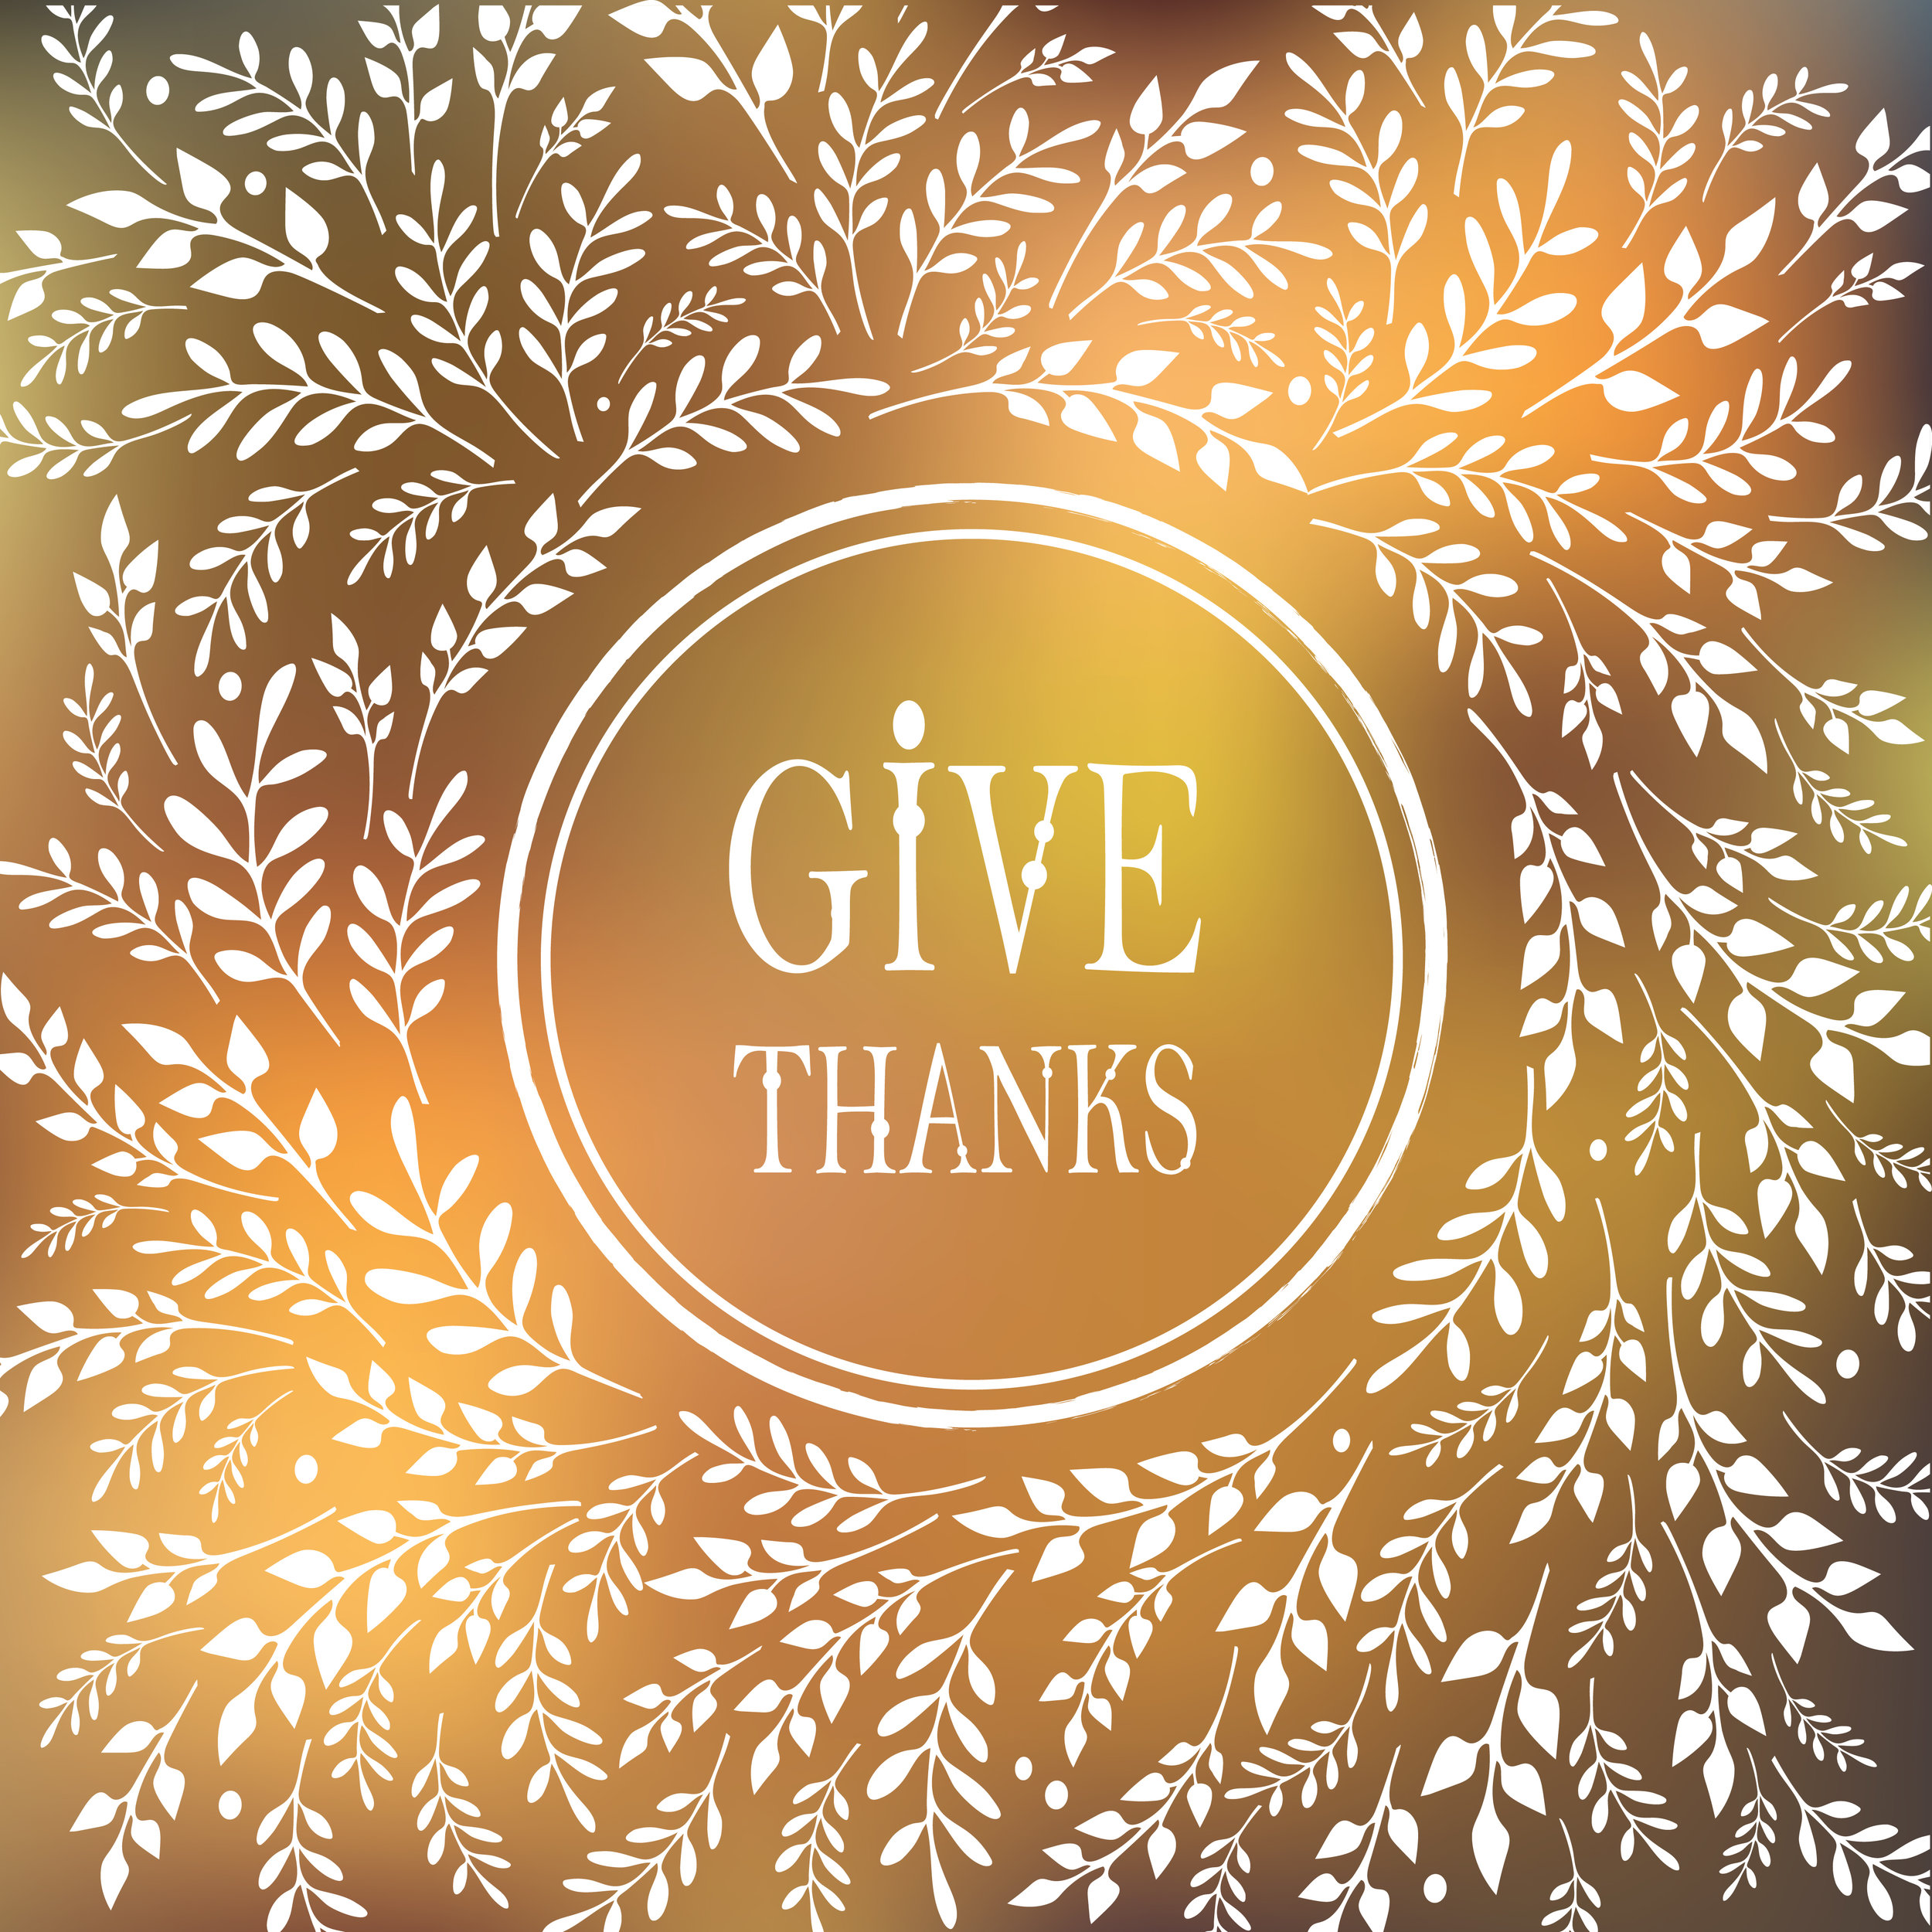 give-thanks.jpg